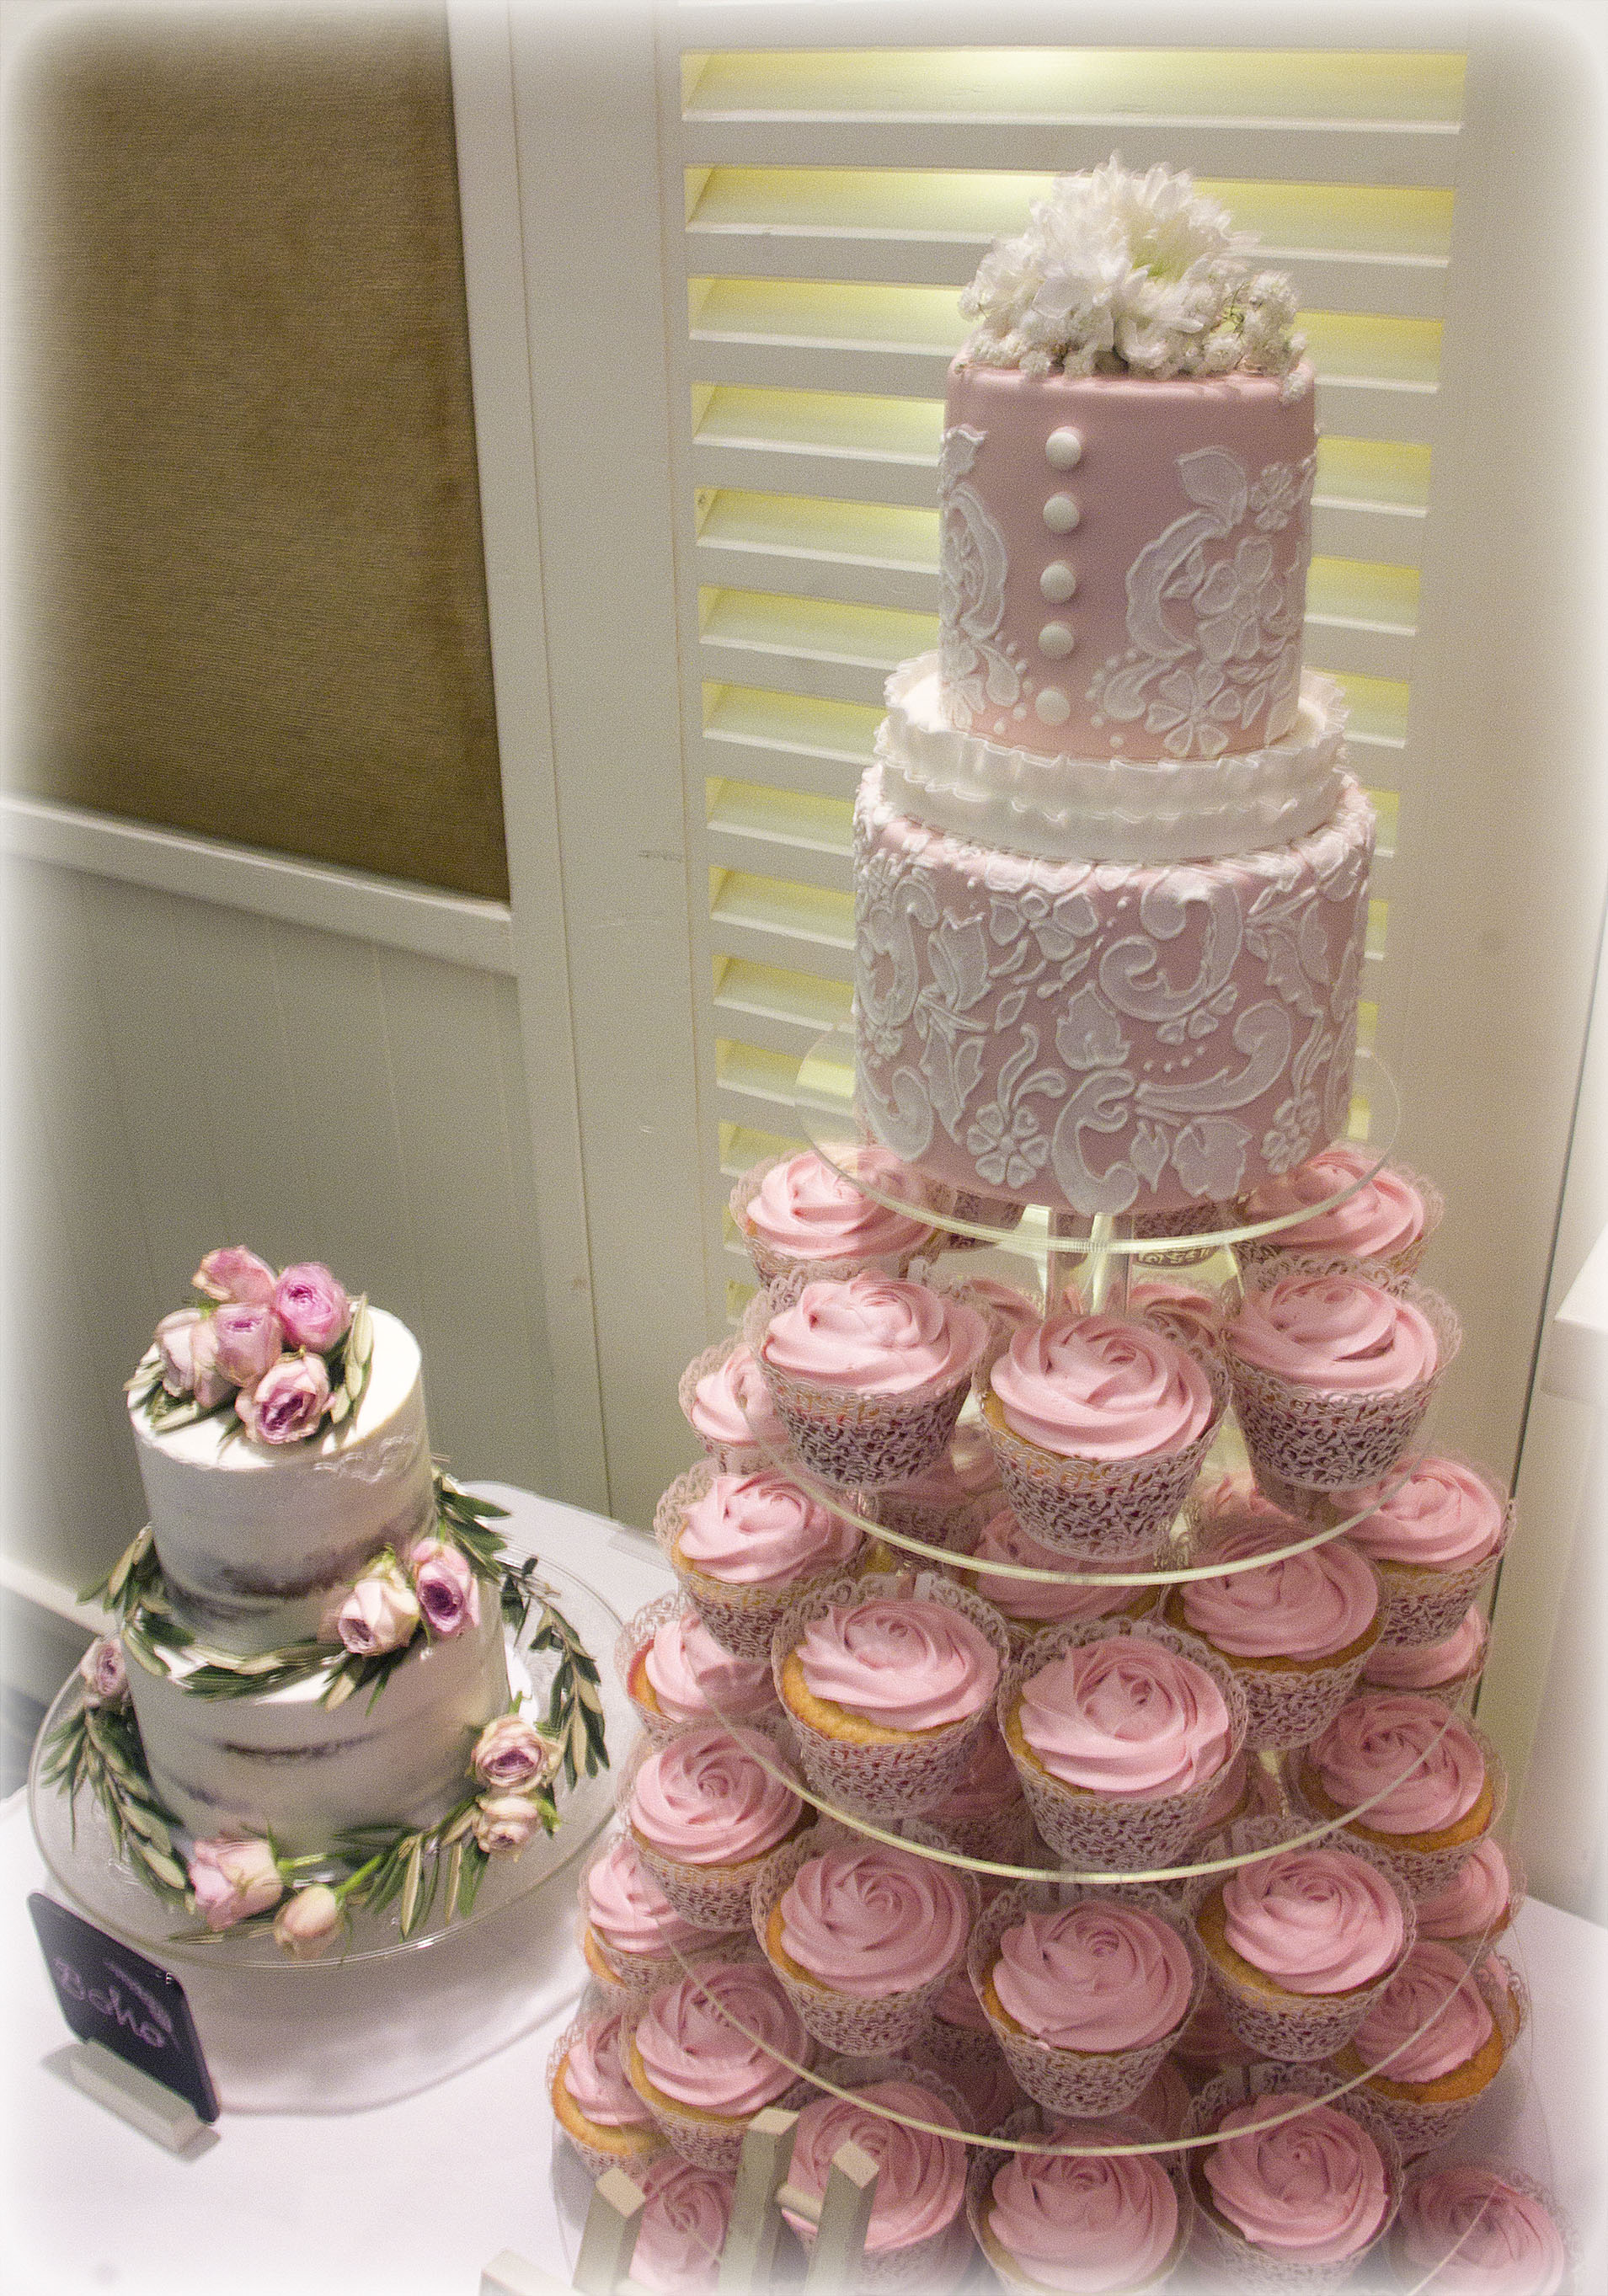 Pink Lace two tier wedding cake with pink swirl cupcakes on a 5 tier cake/cupcake acrylic stand.